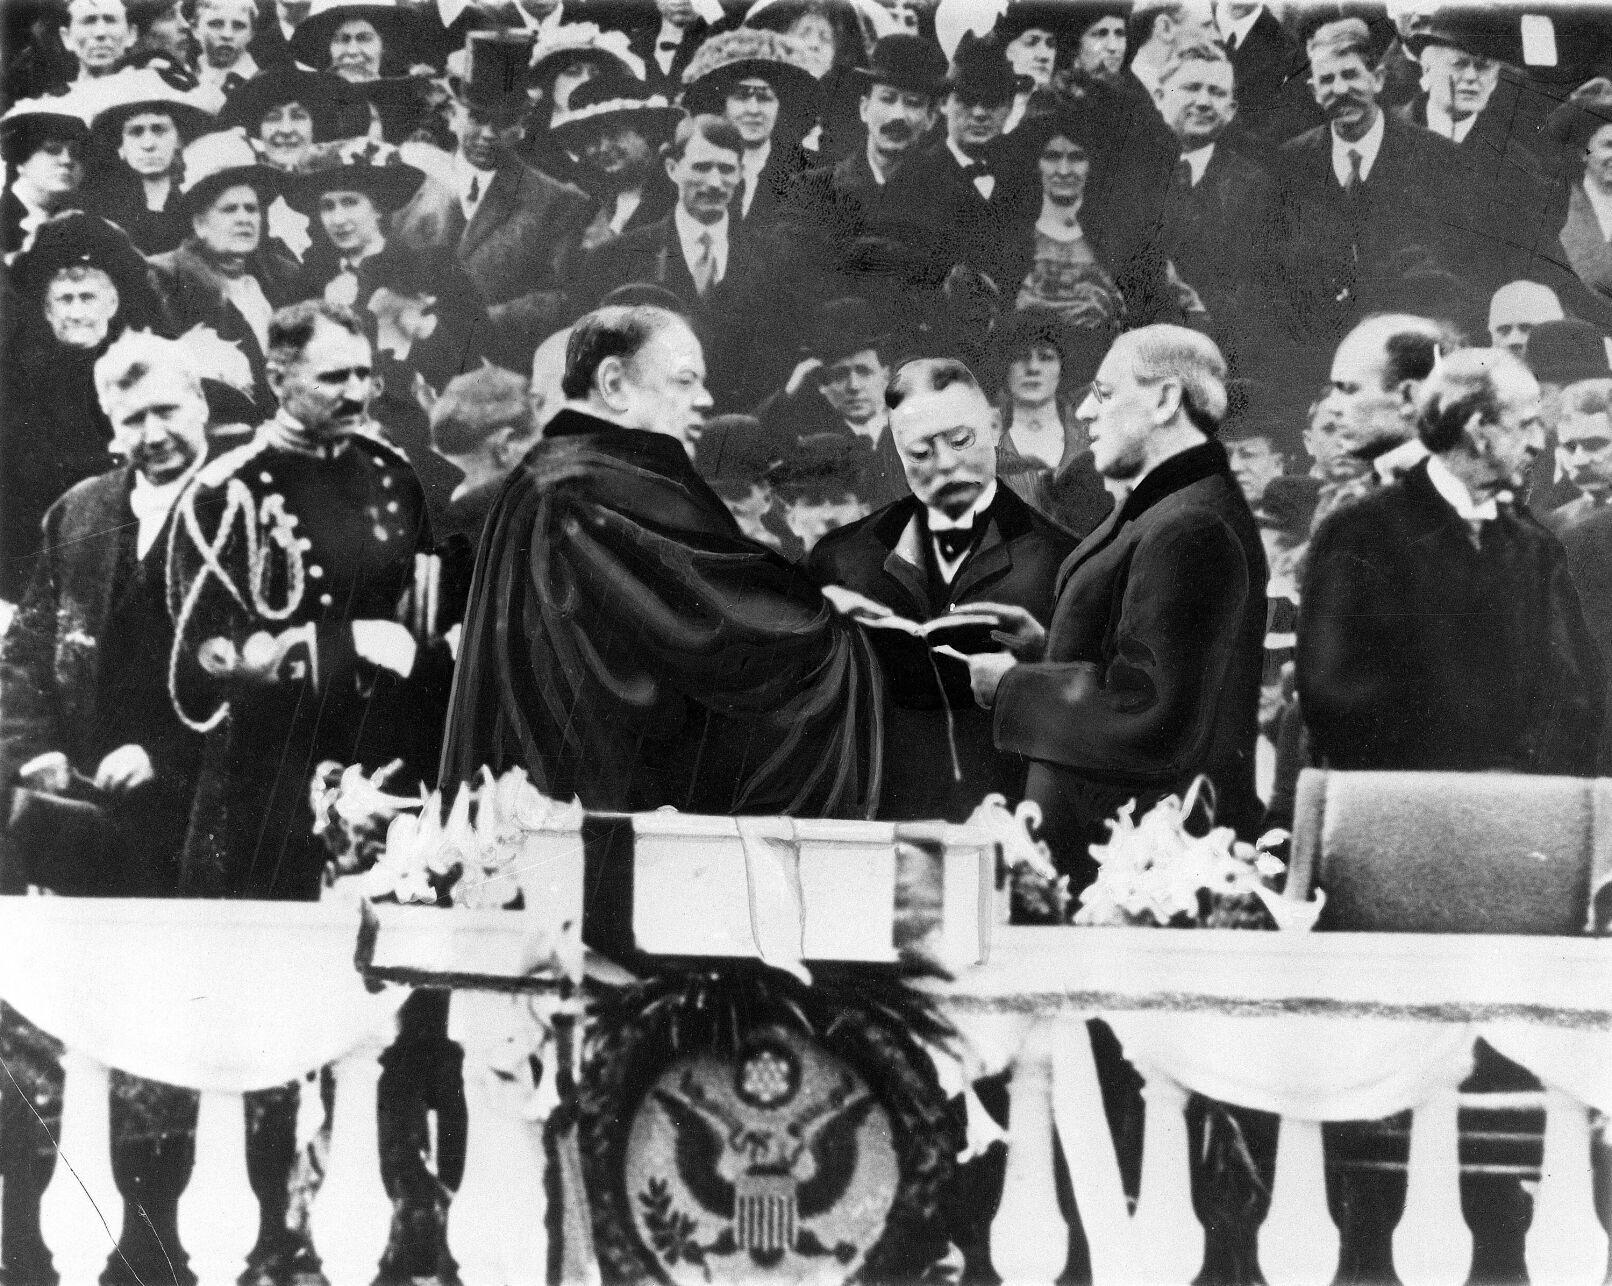 File:WilsonFirstInauguration.jpg